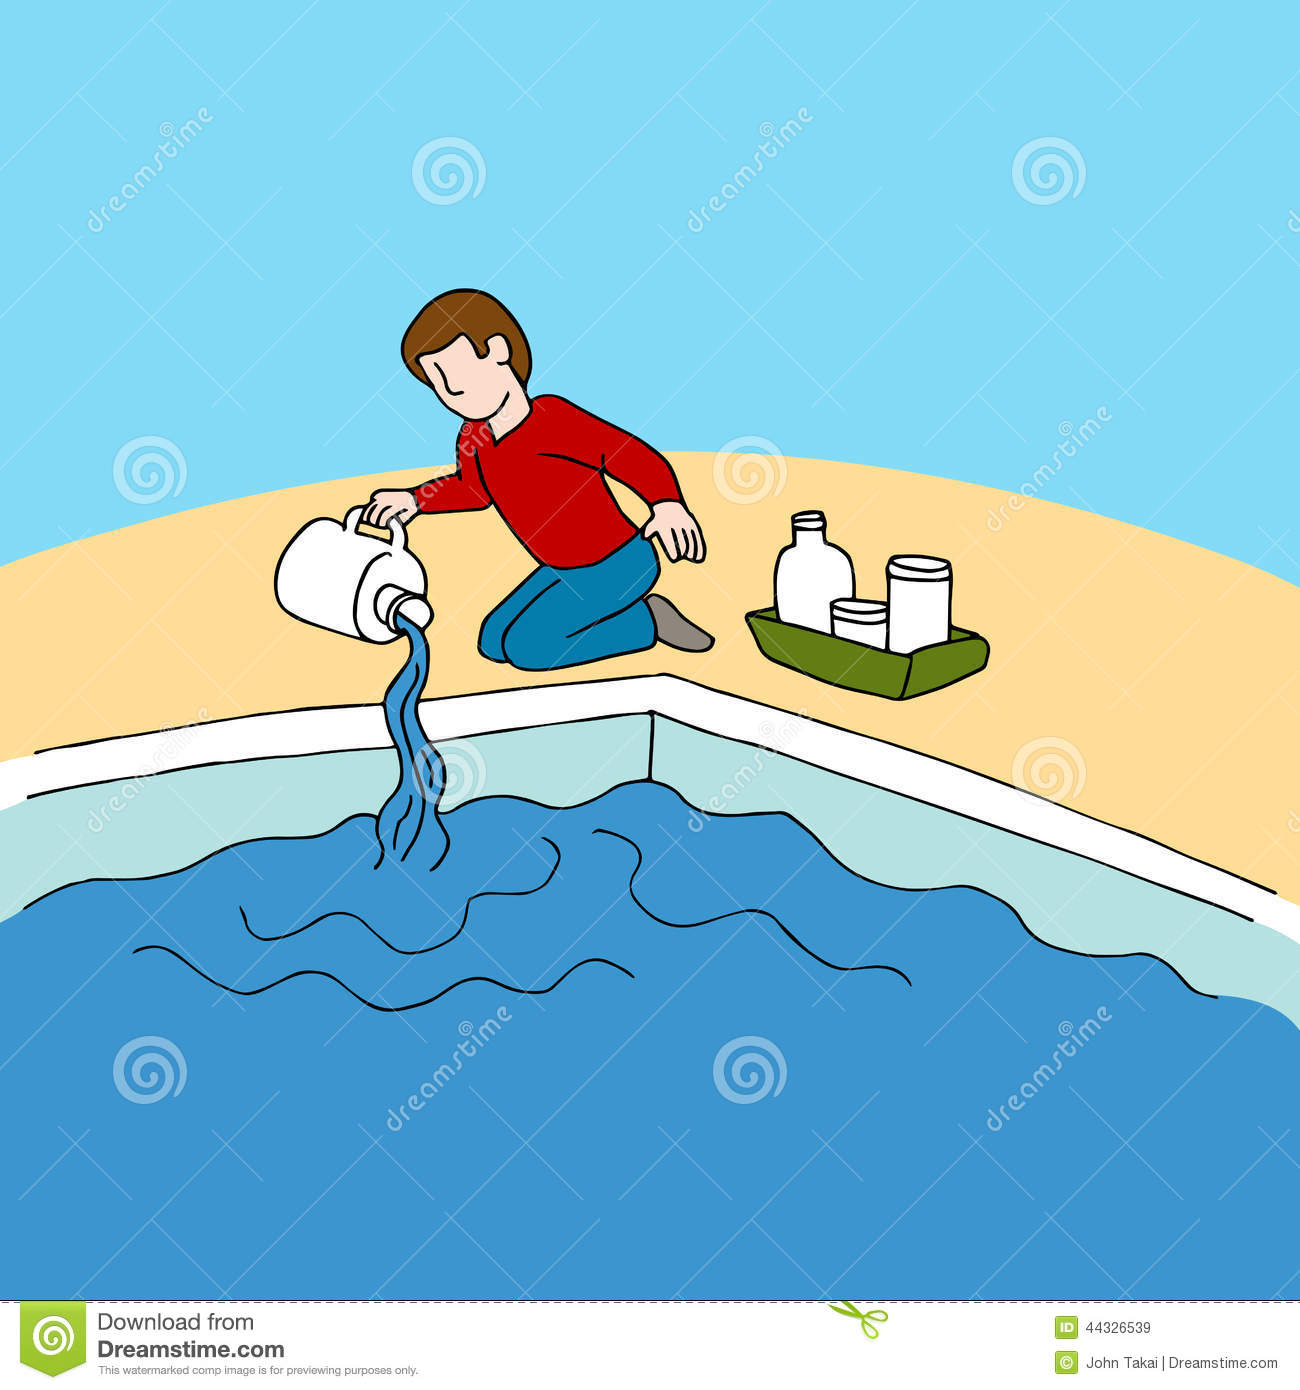 Pool Cleaning Clip Art : Pool chemicals stock vector image of balance cleaning